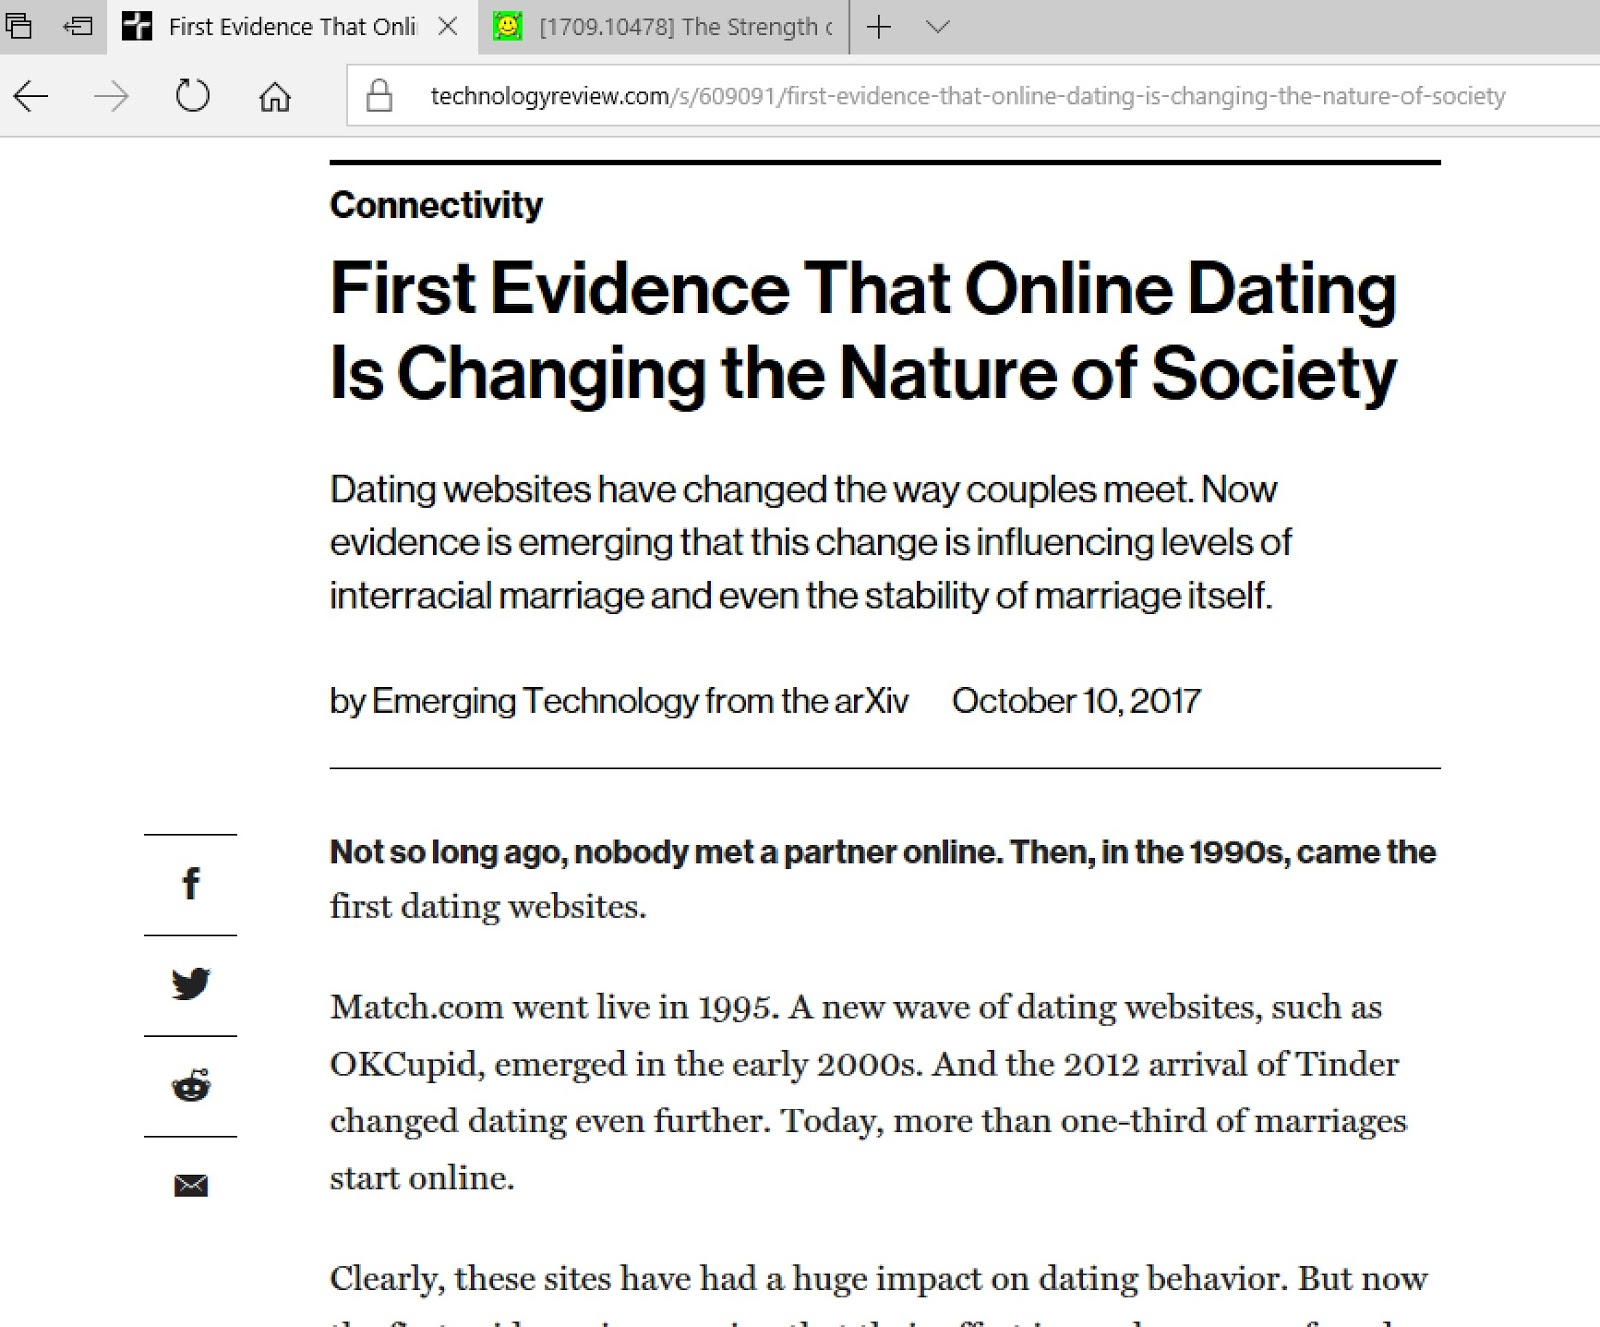 First evidence that online dating